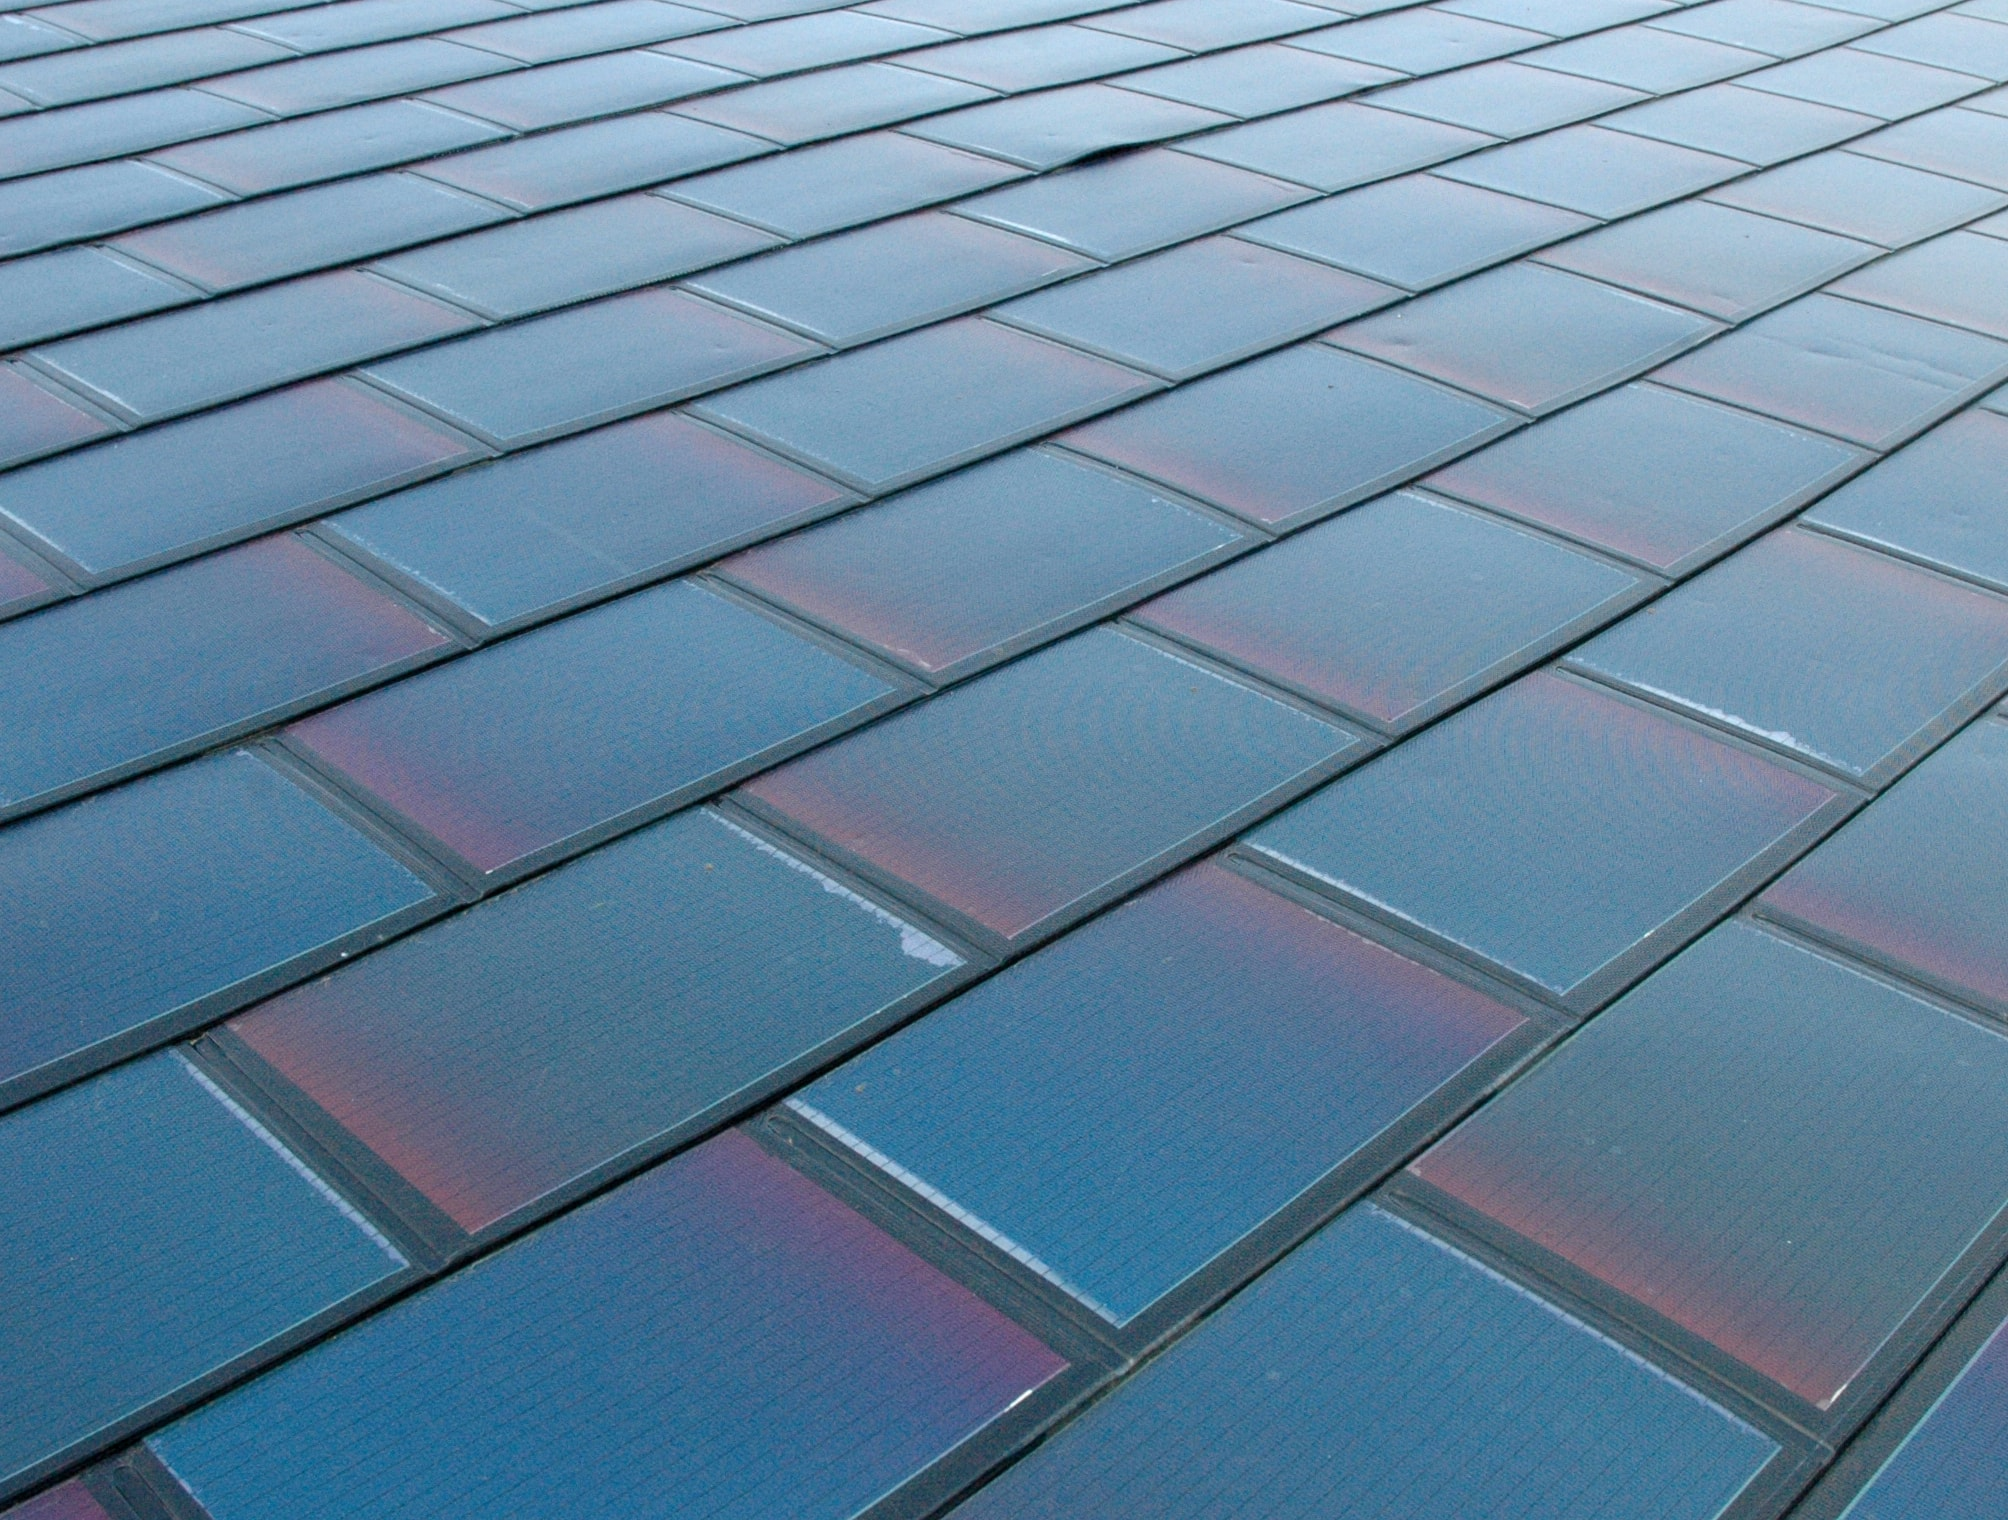 Tesla Solar Roof Shingles >> Elon Musk leads effort to build house roofs entirely out ...